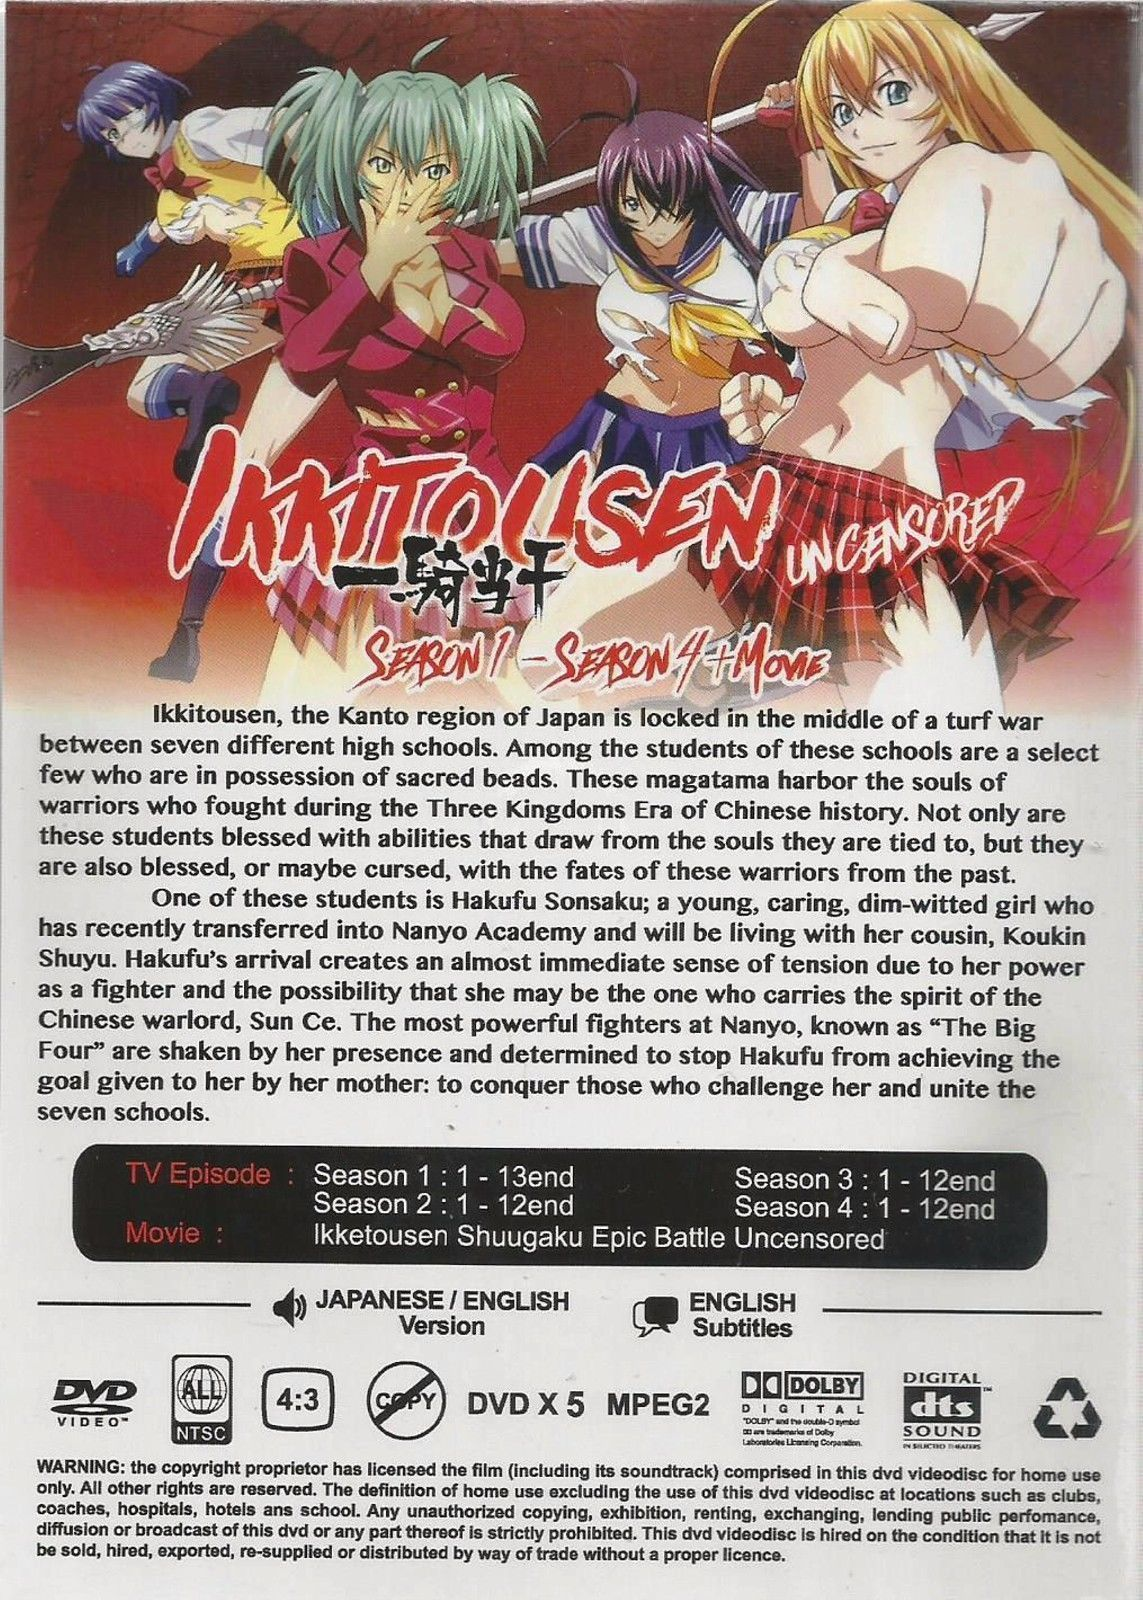 Anime DVD Ikkitousen Season 1-4 + Movie Uncensored English Dub Free Shipping